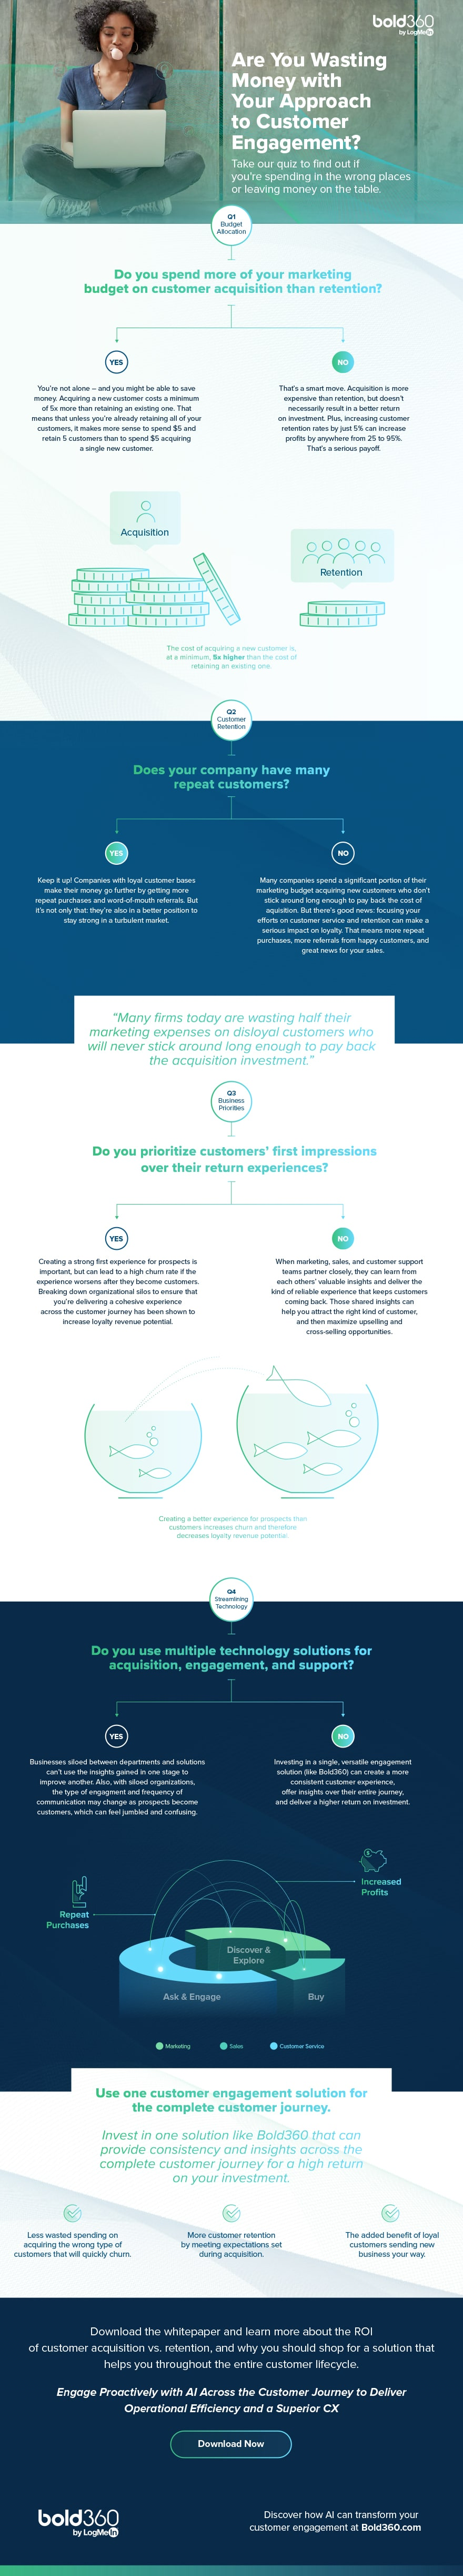 Infographic: Are You Wasting Money with Your Approach to Customer